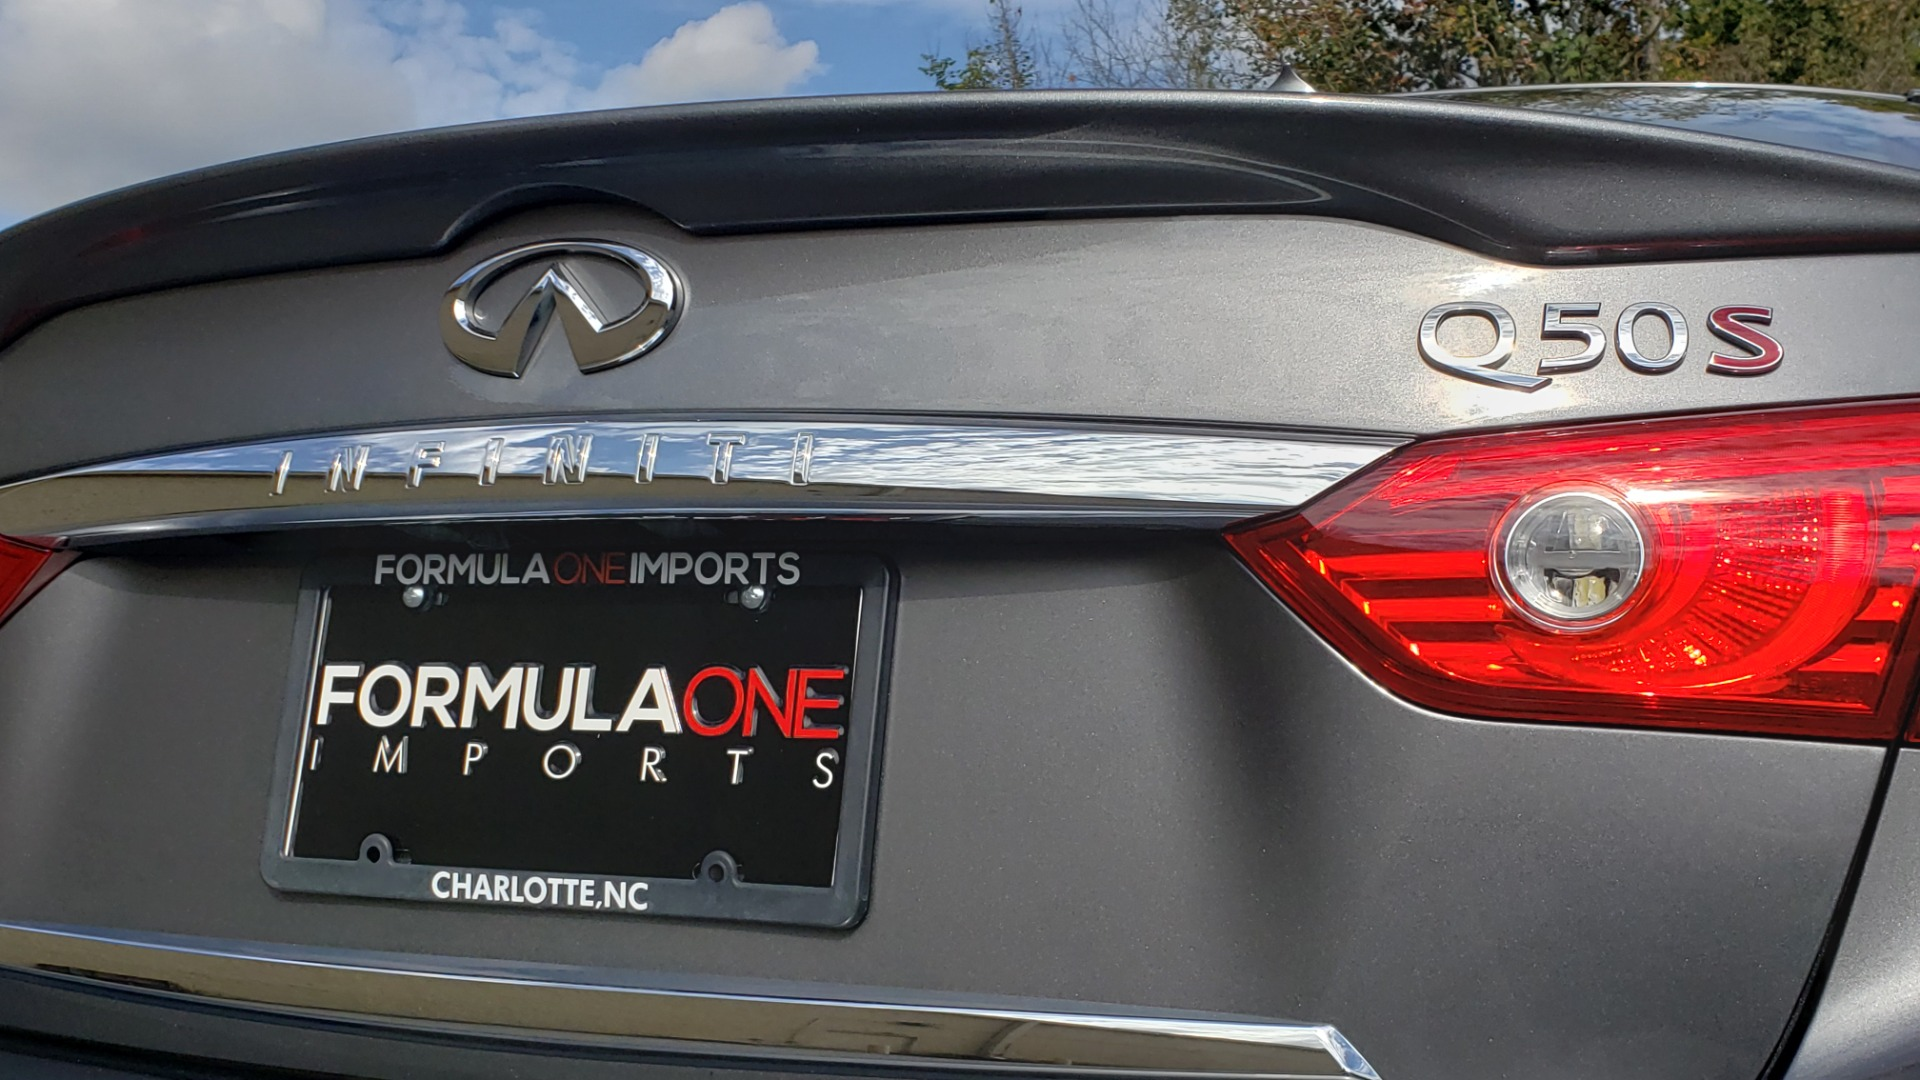 Used 2016 INFINITI Q50 3.0T RED SPORT 400 / NAV / PREM PLUS / BLIND SPOT / REARVIEW for sale $28,495 at Formula Imports in Charlotte NC 28227 30